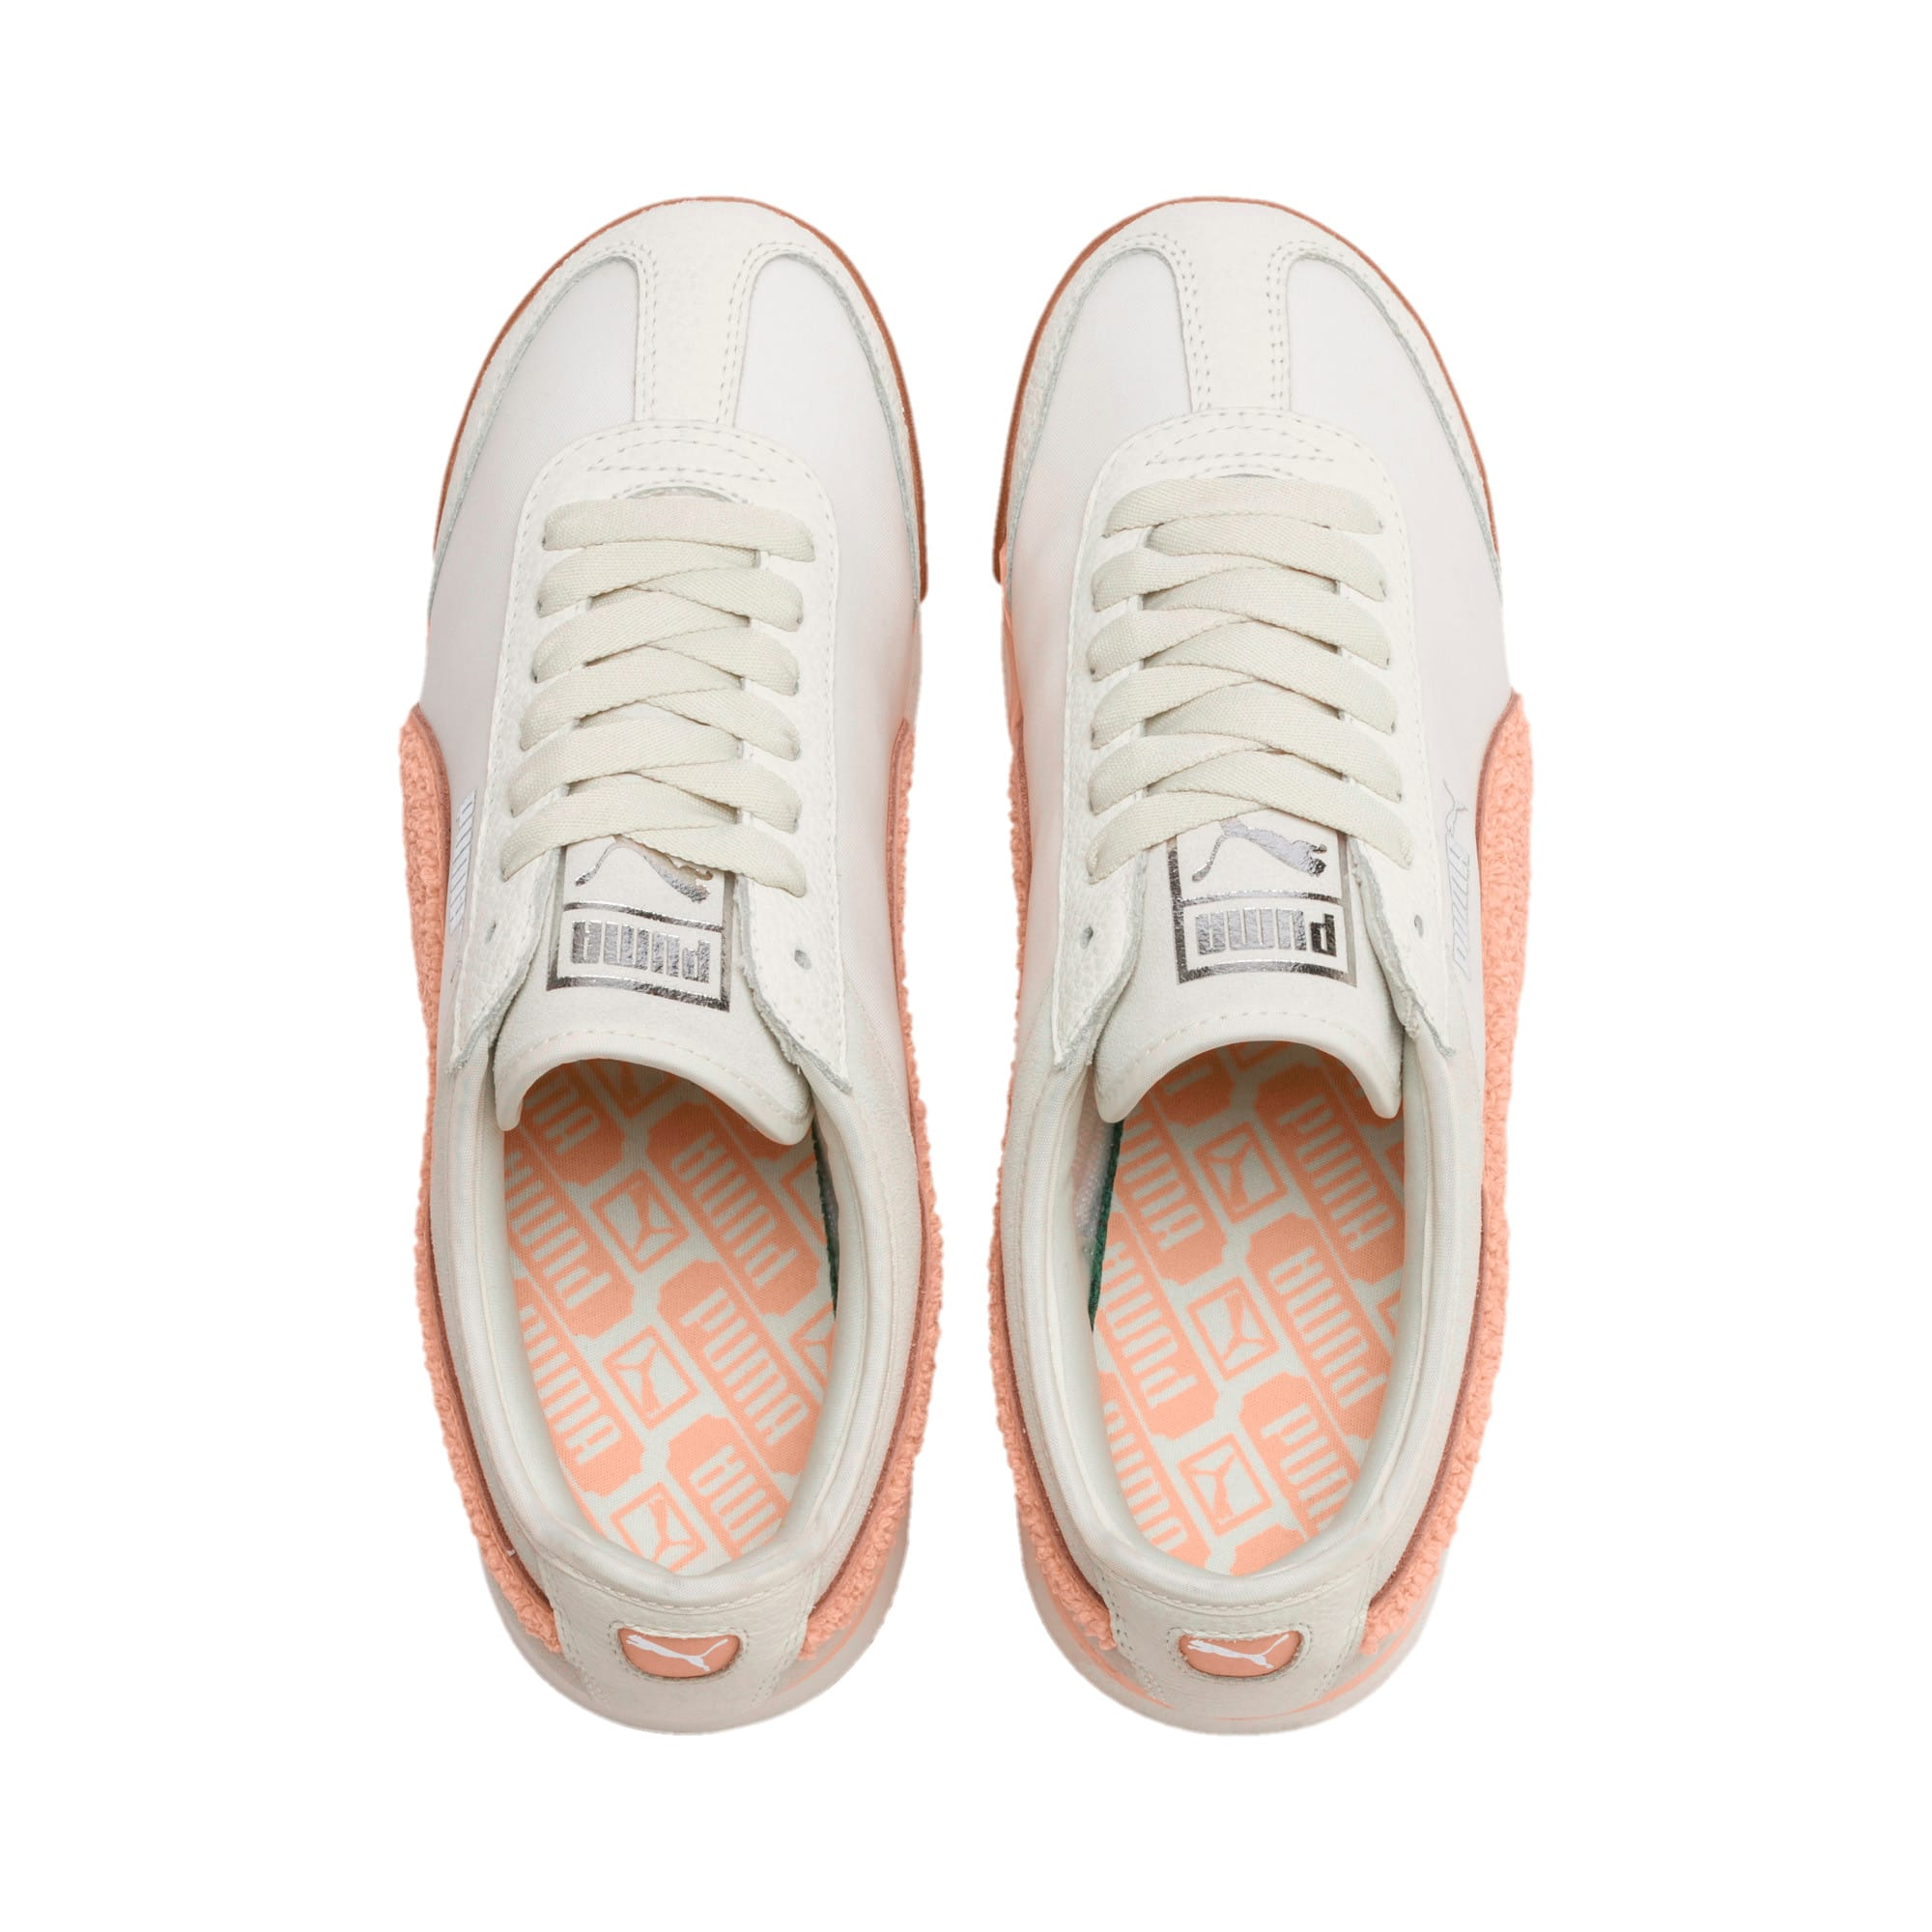 Thumbnail 8 of Roma Amor Heritage Women's Trainers, Marshmallow-Peach Parfait, medium